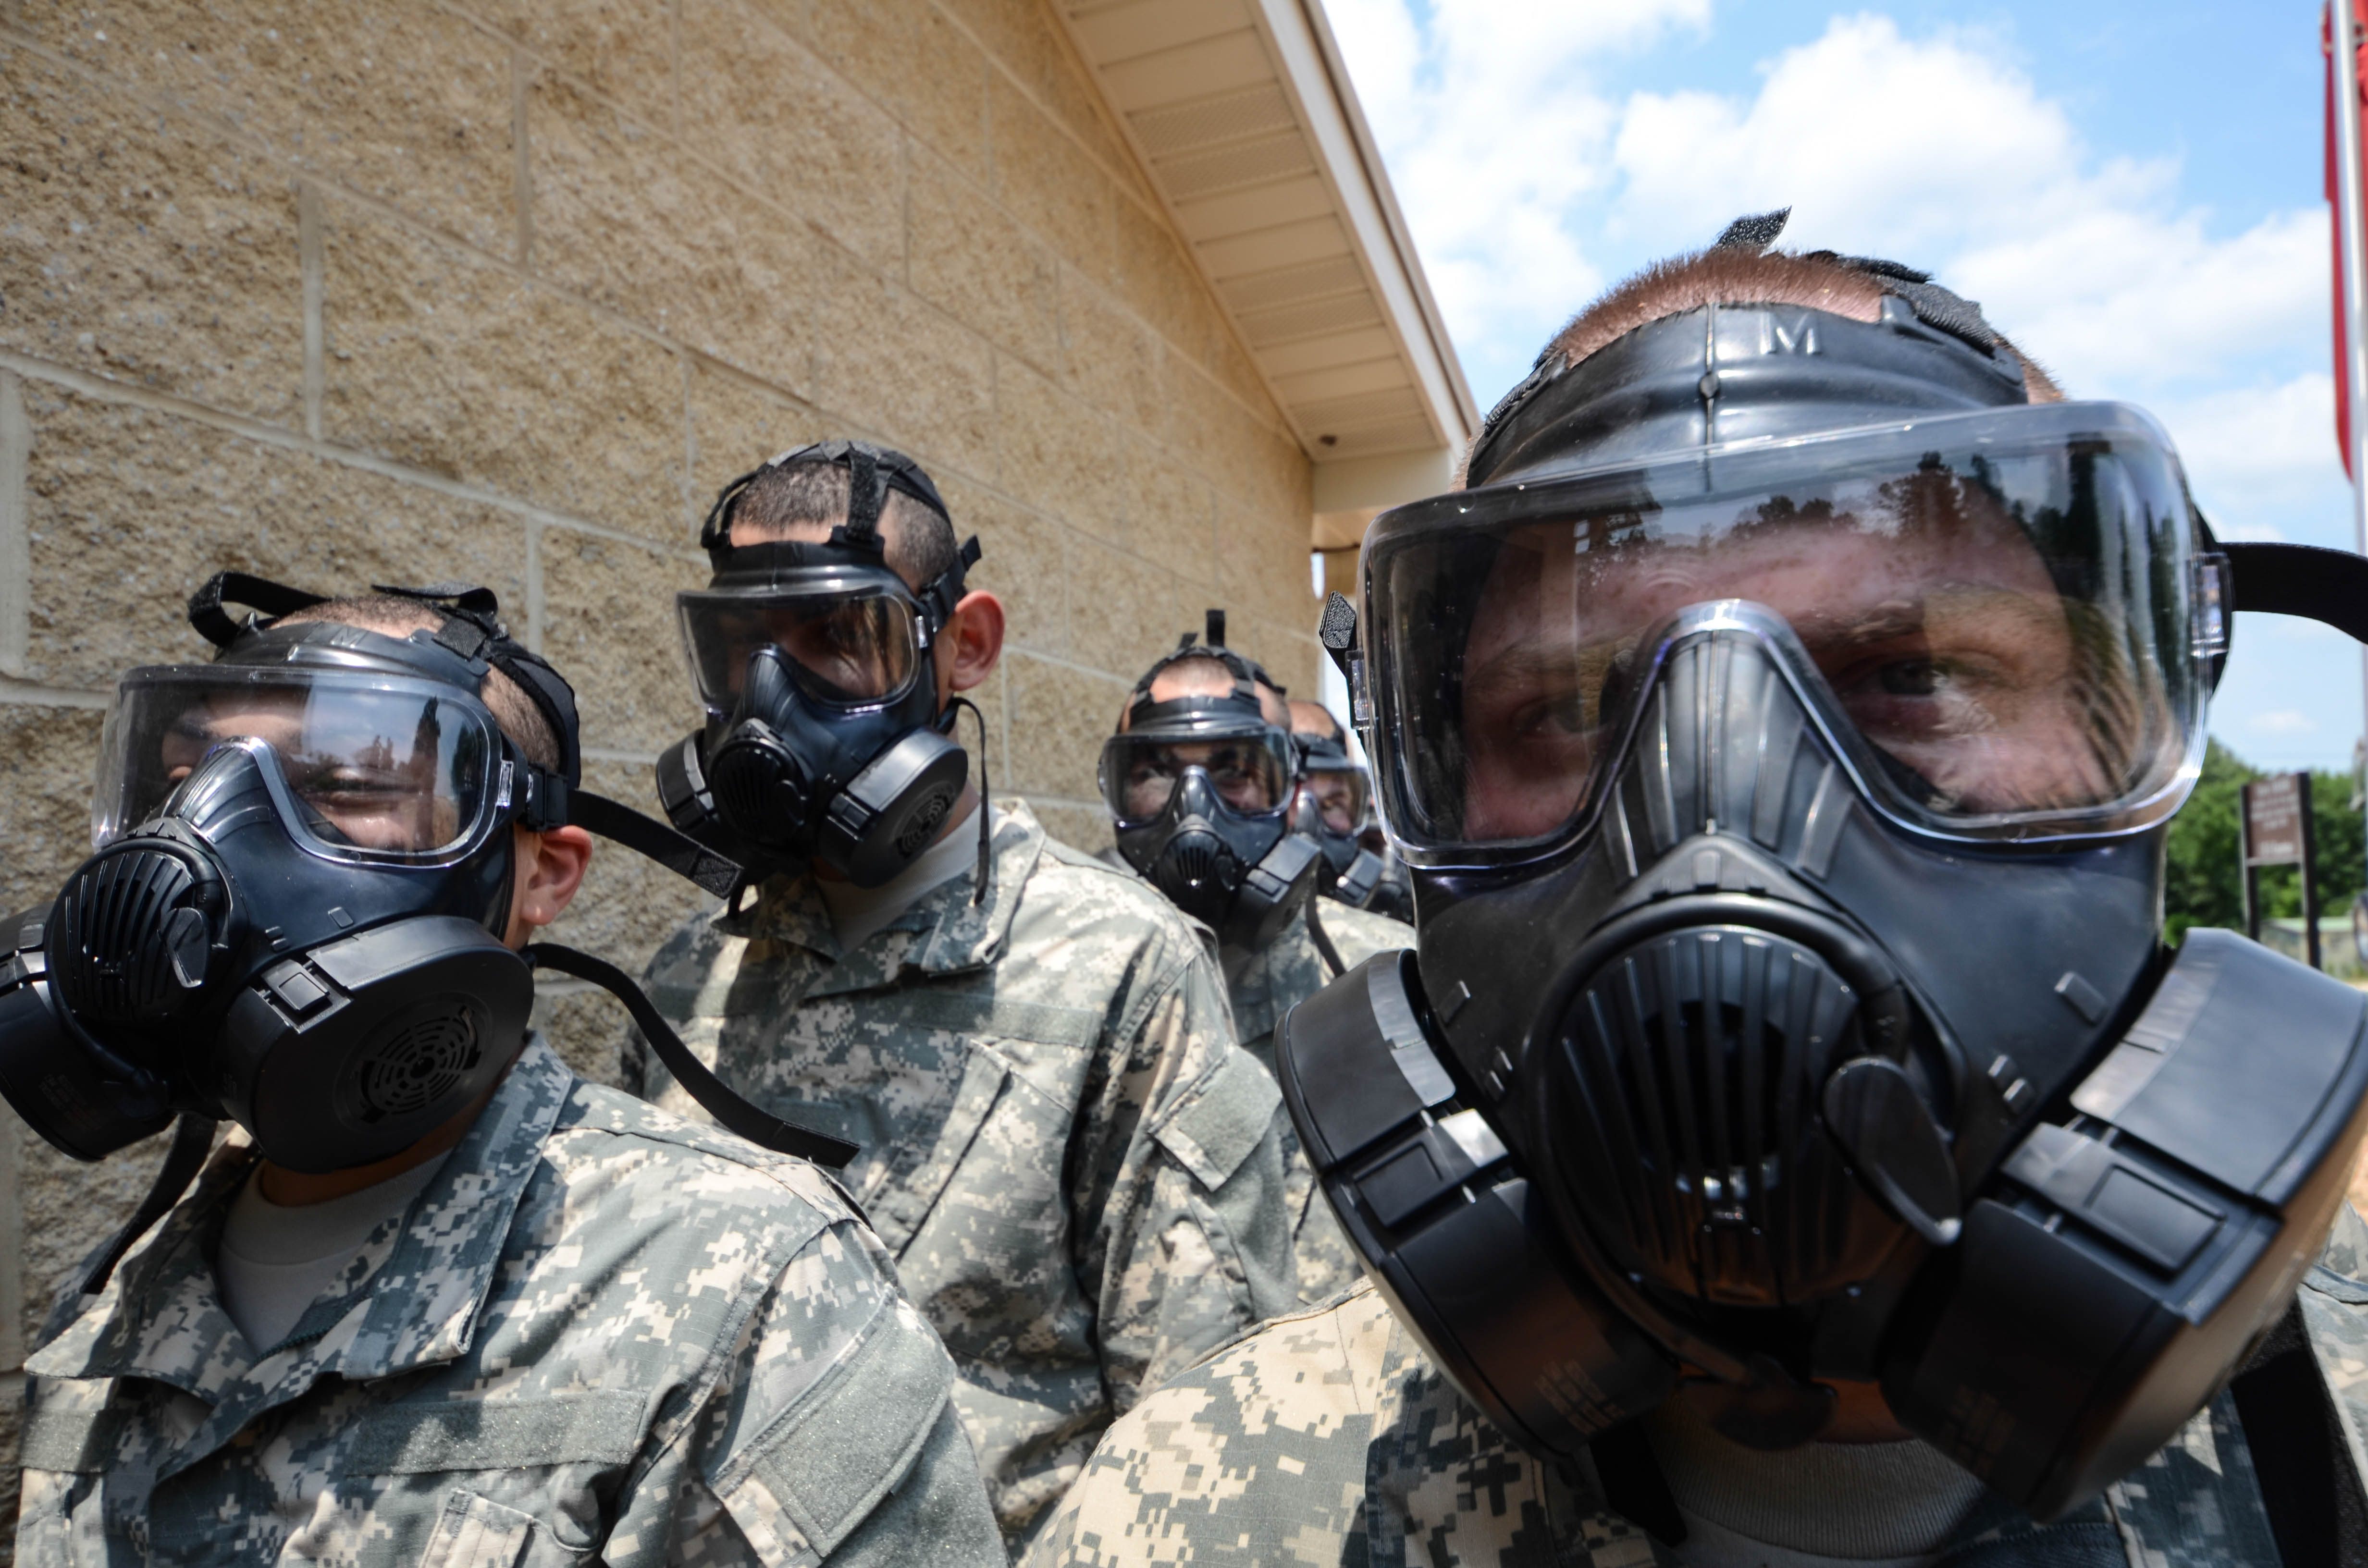 The makers of the Army's gas mask are looking into beard-friendly options